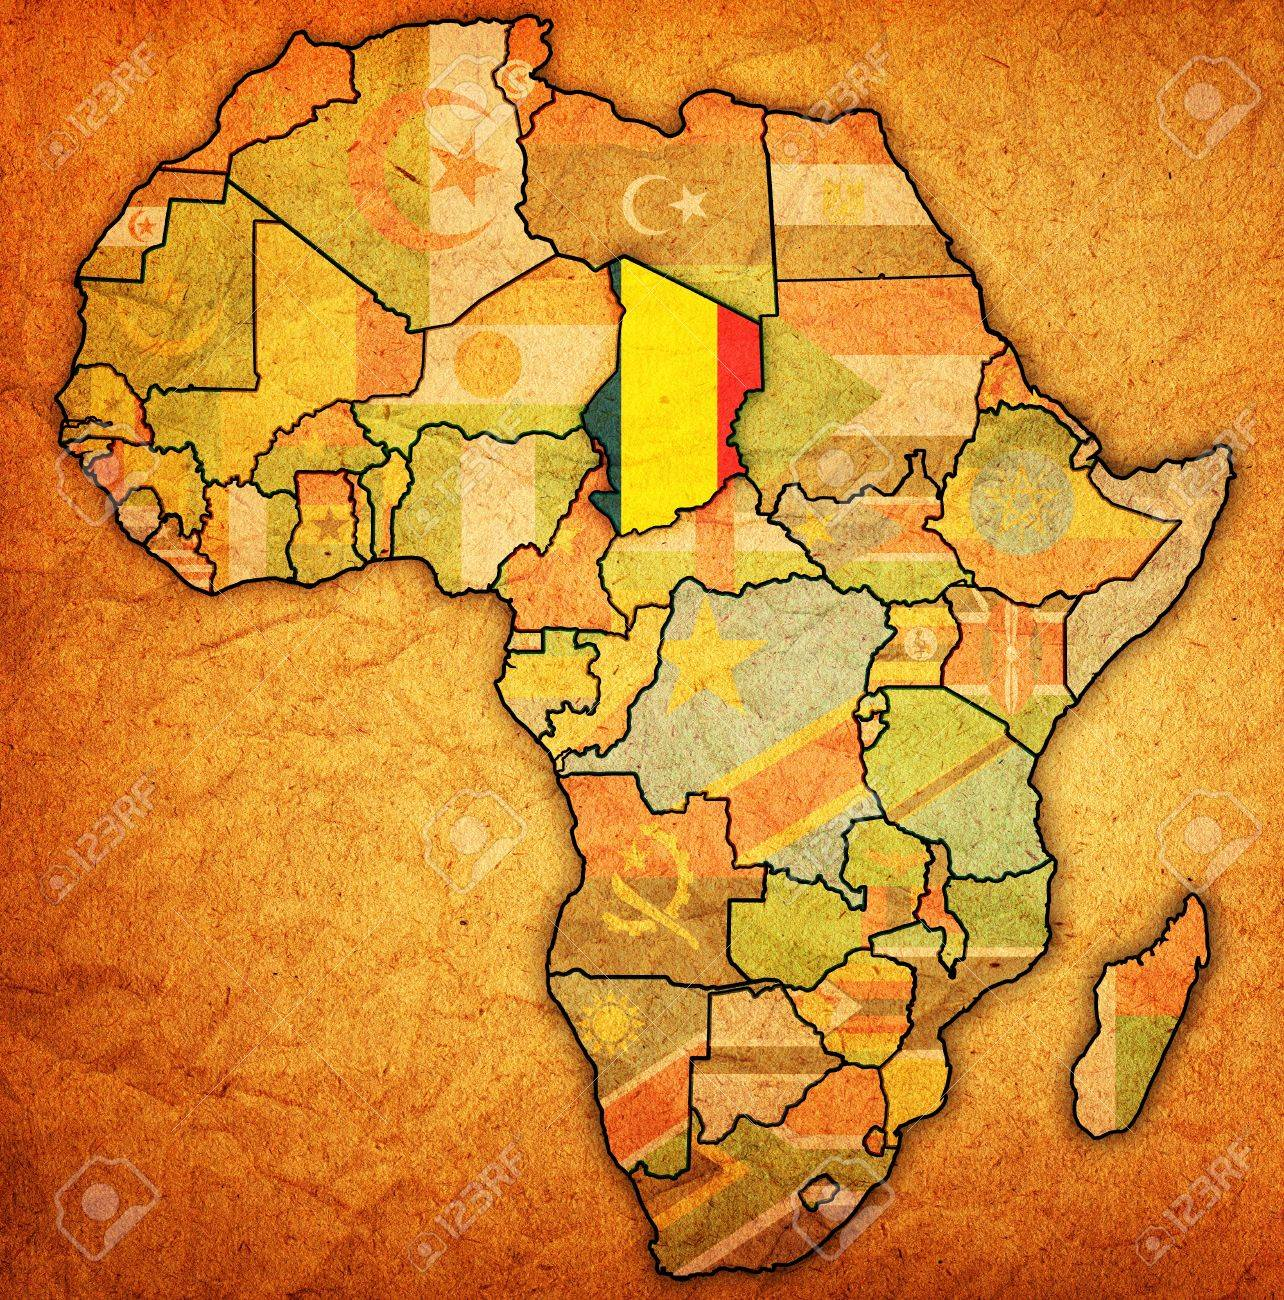 Chad On Actual Vintage Political Map Of Africa With Flags Stock